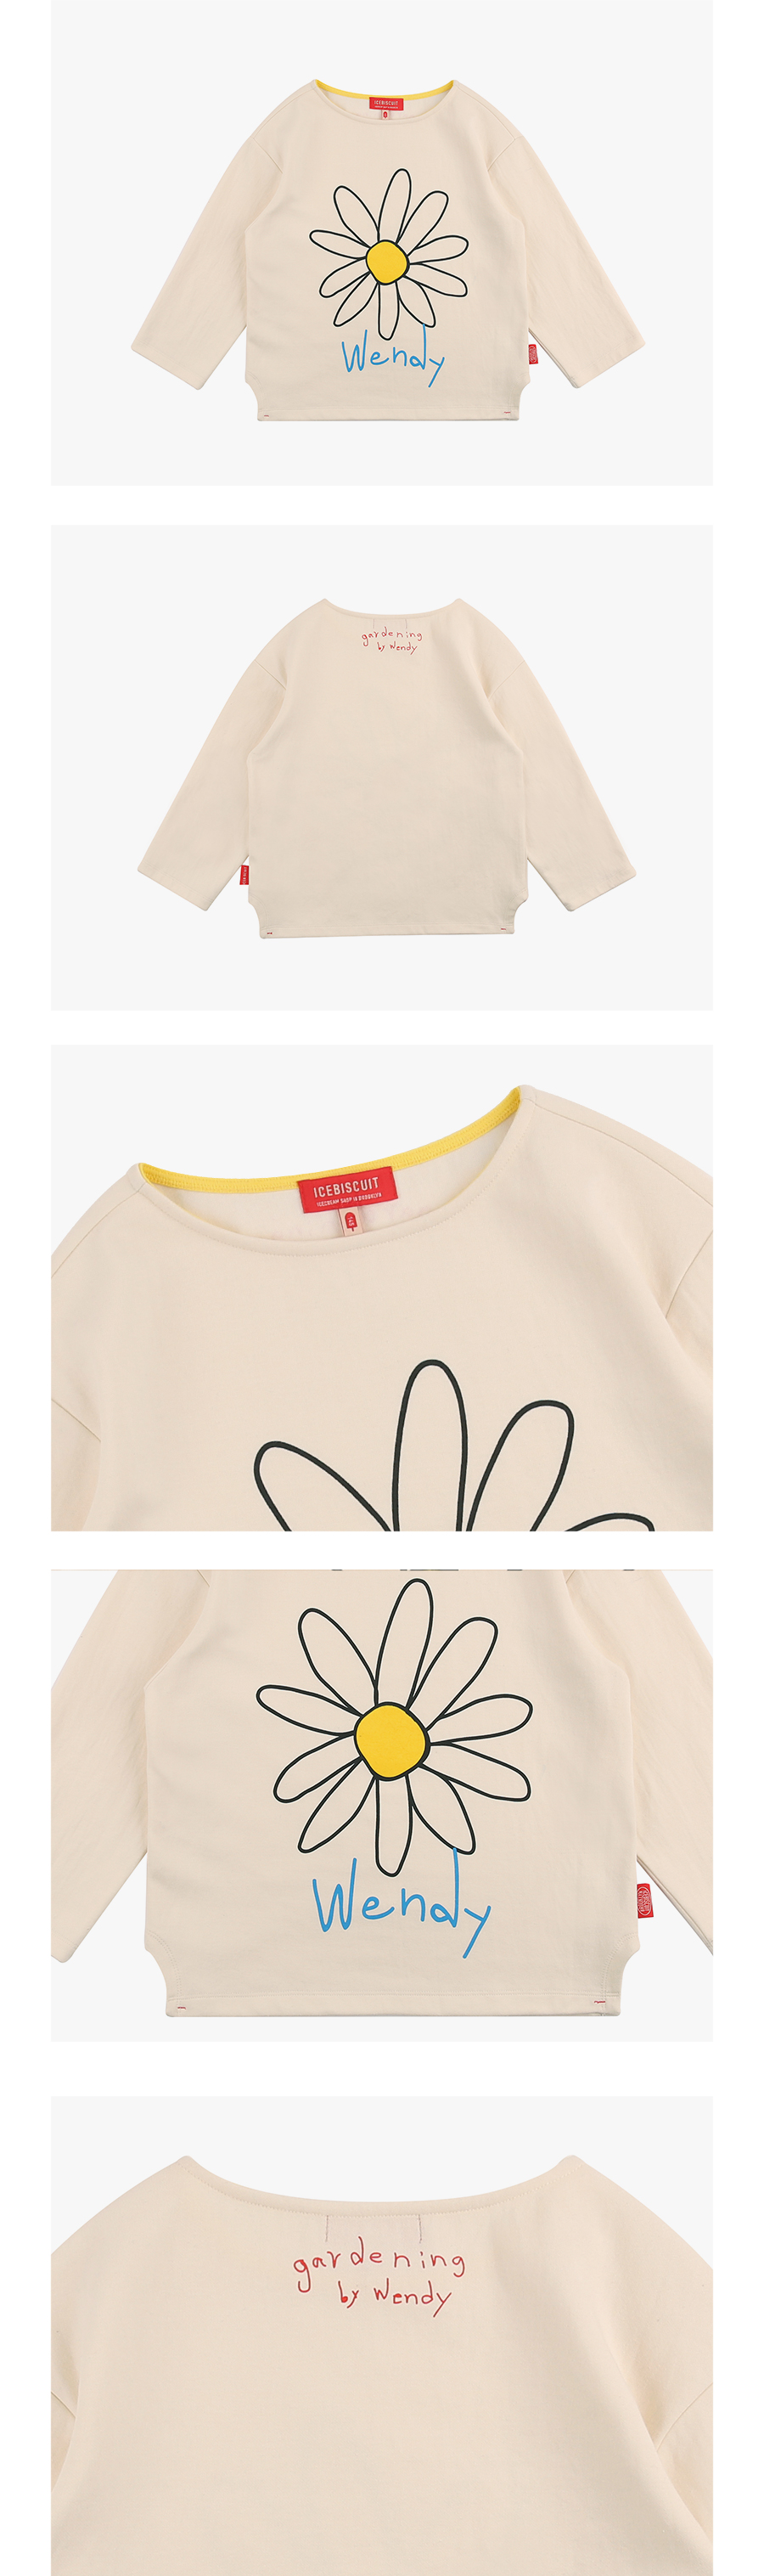 Wendy's Daisy long sleeve tee 상세 이미지